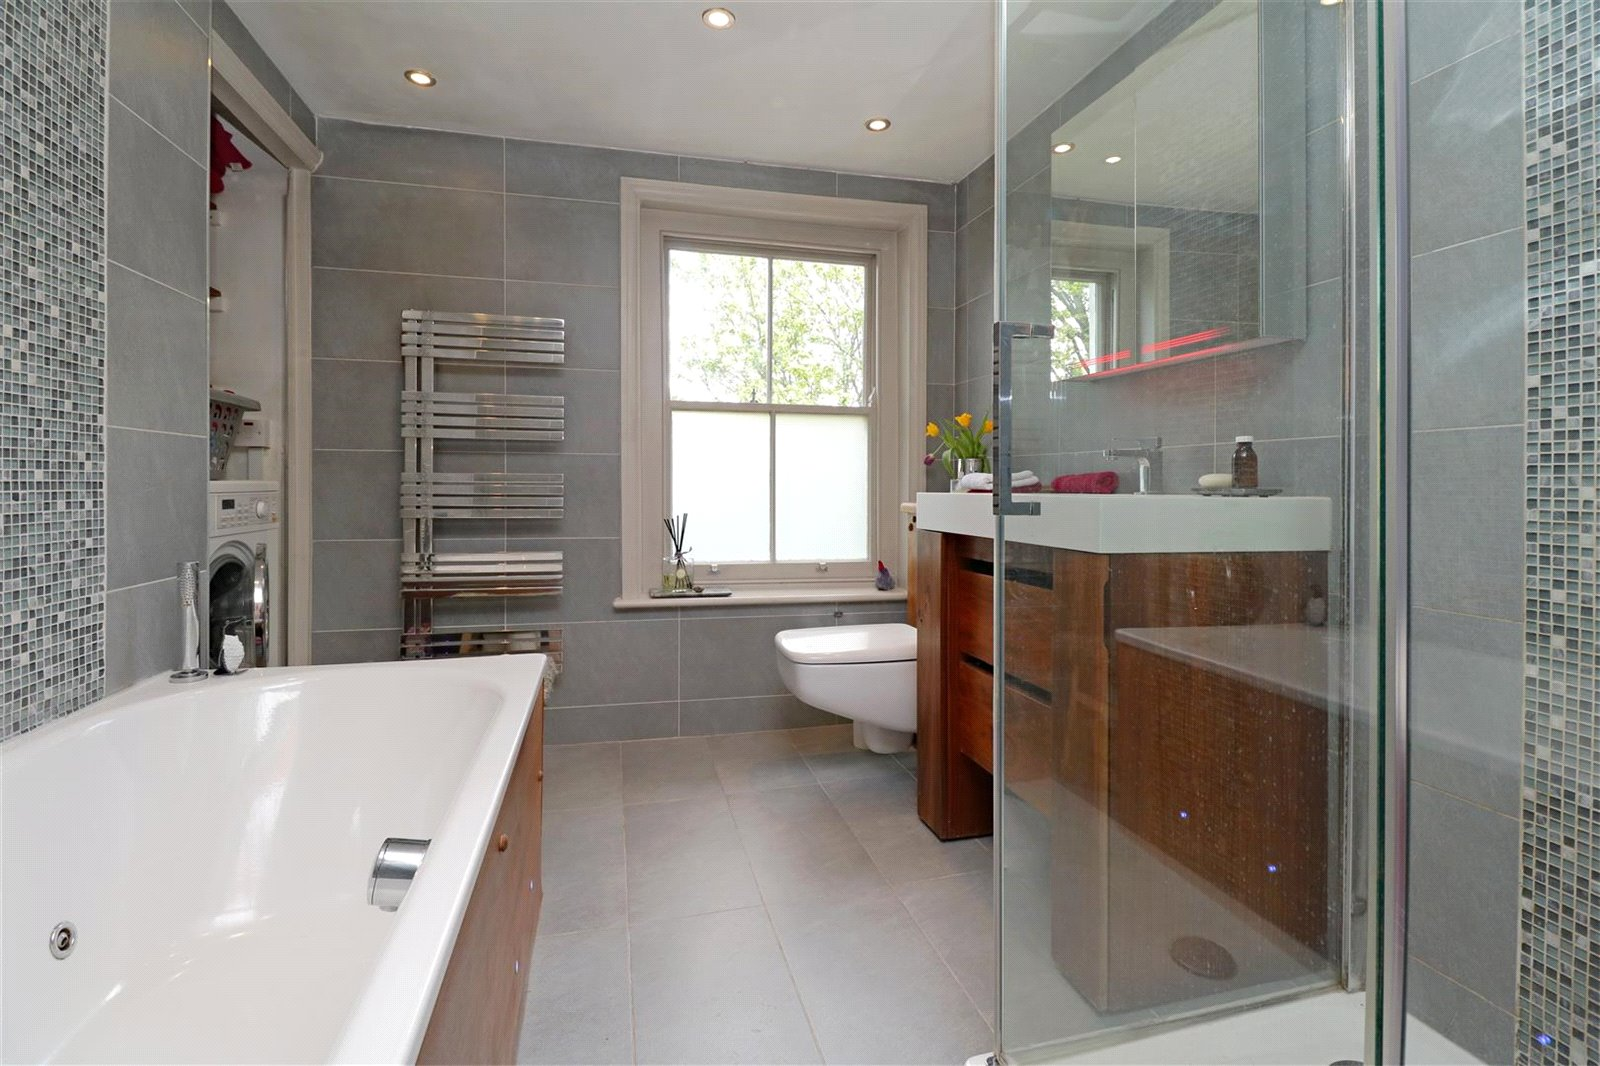 House for sale in Highgate, N6 5HX 4